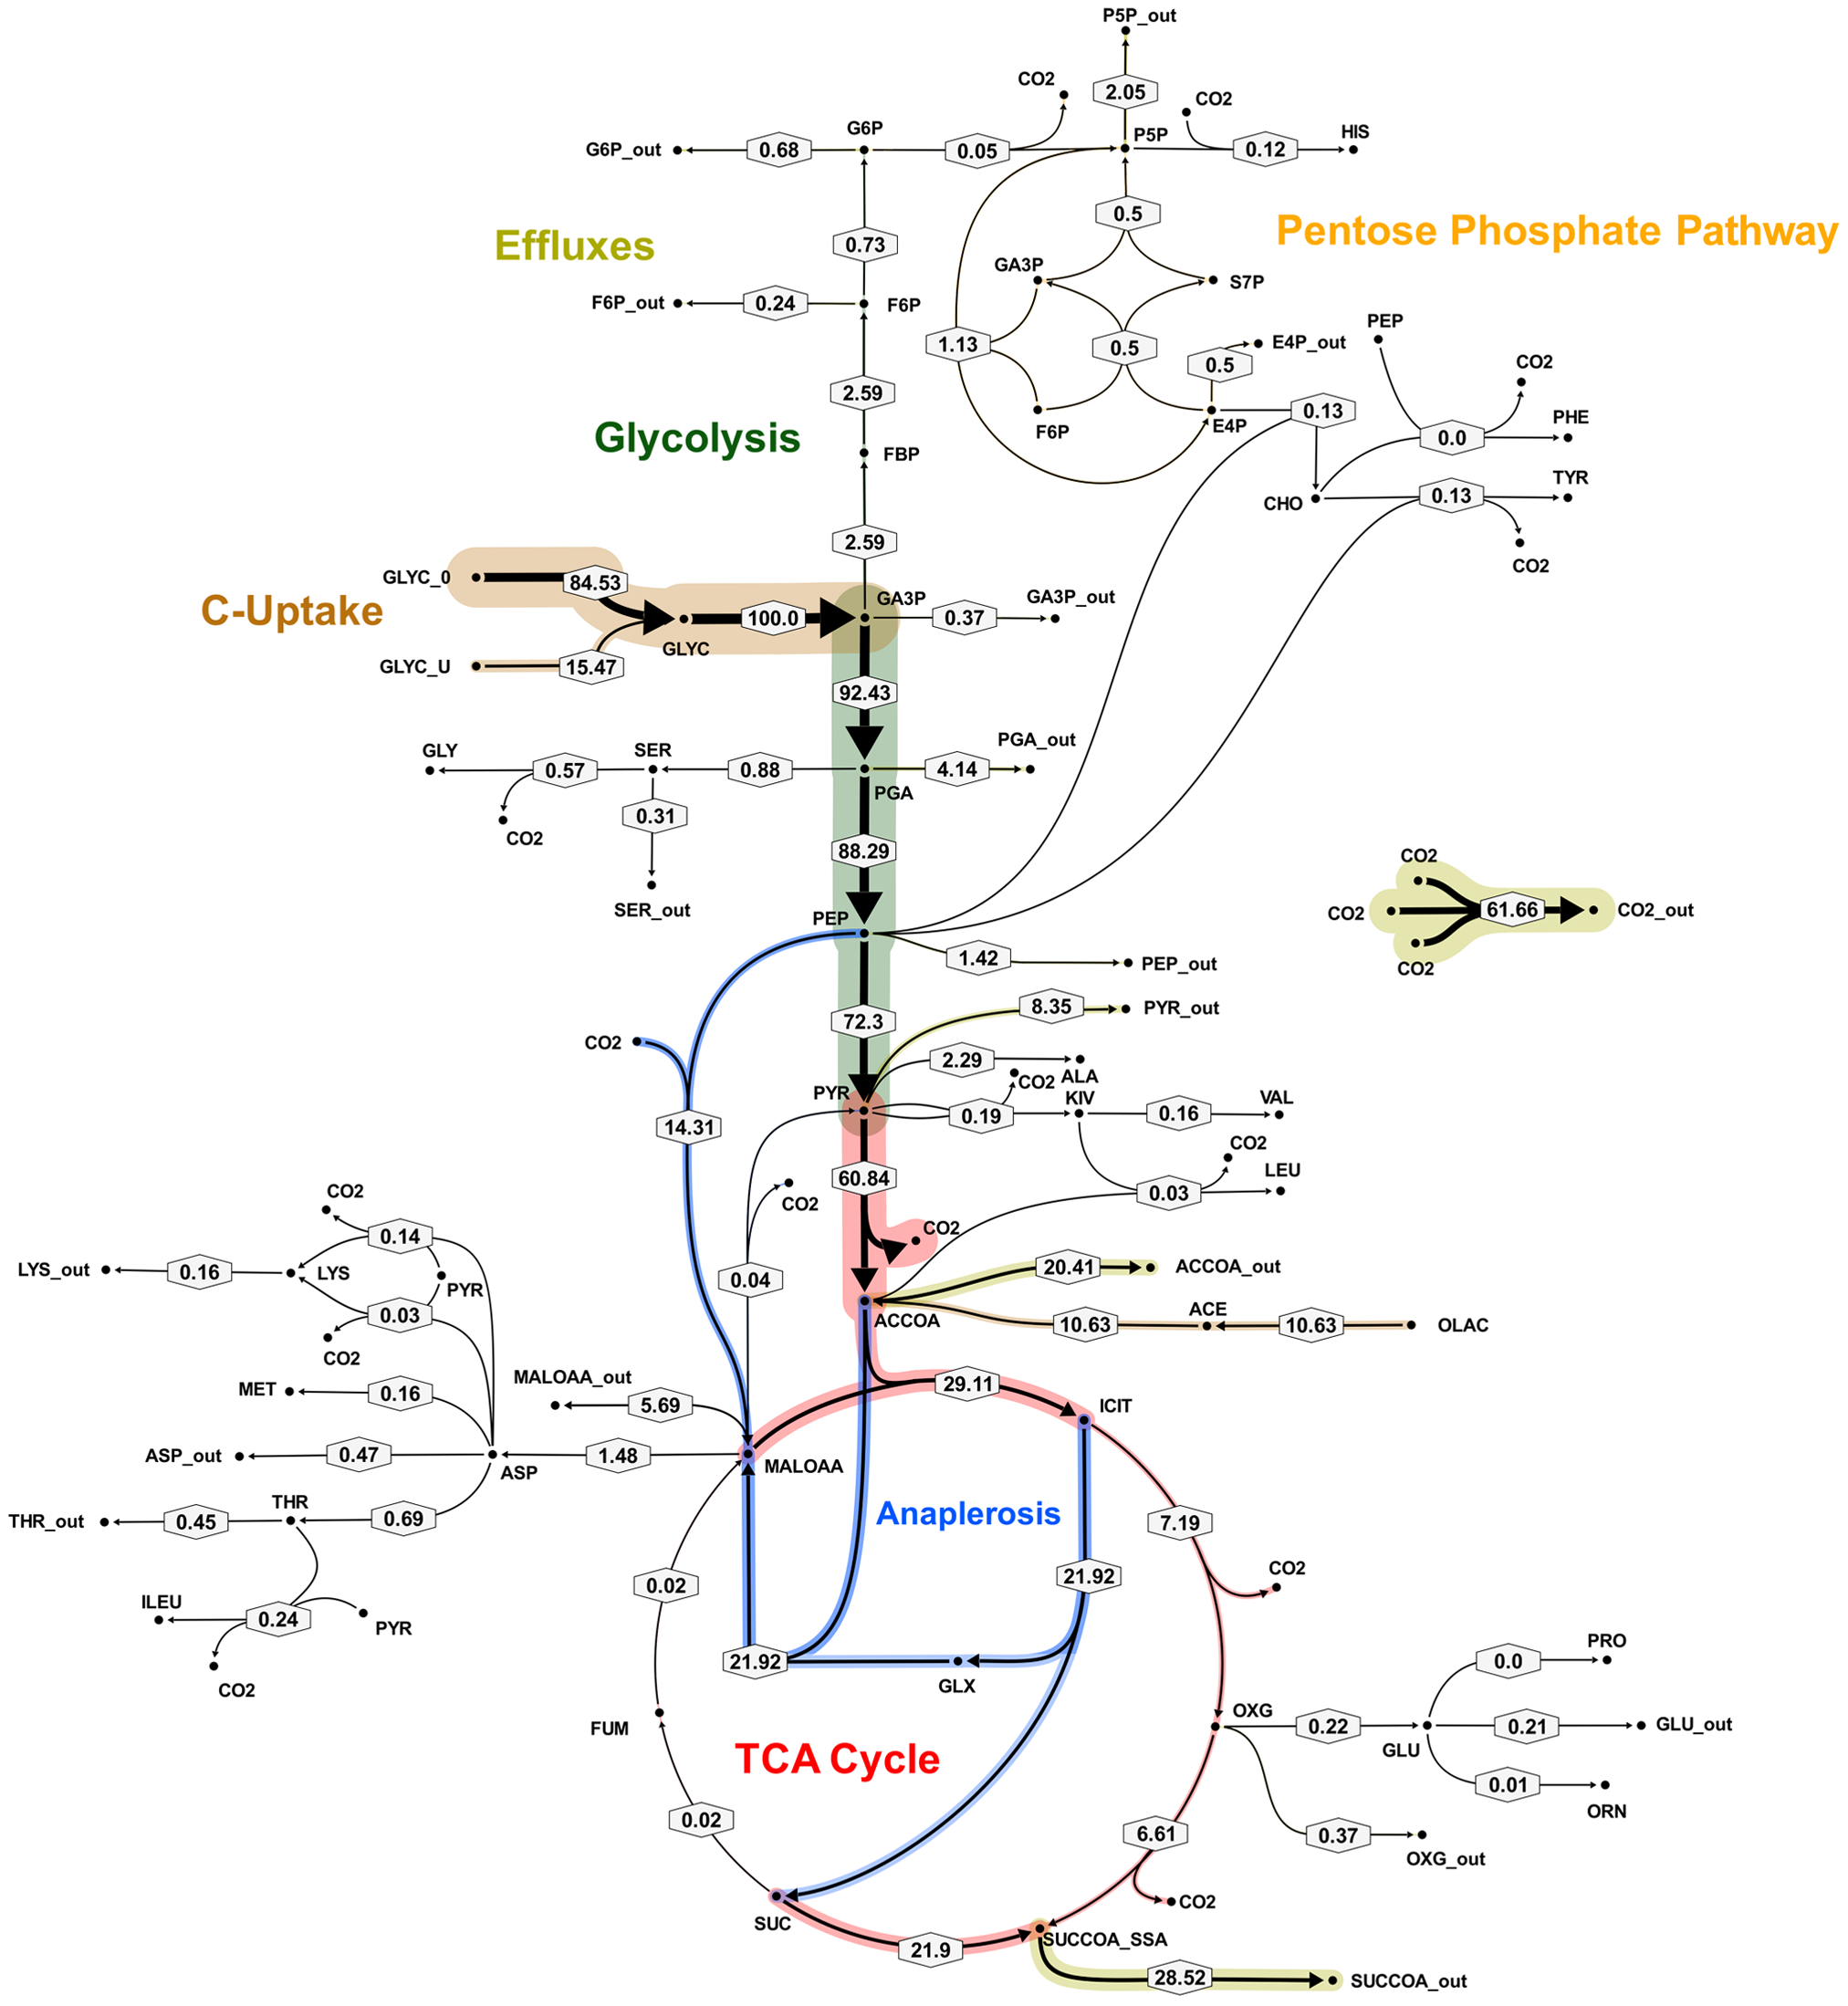 Metabolic flux map B for <i>M. tuberculosis</i> in glycerol limited continuous culture at slow growth rate (t<sub>d</sub>=69 h).